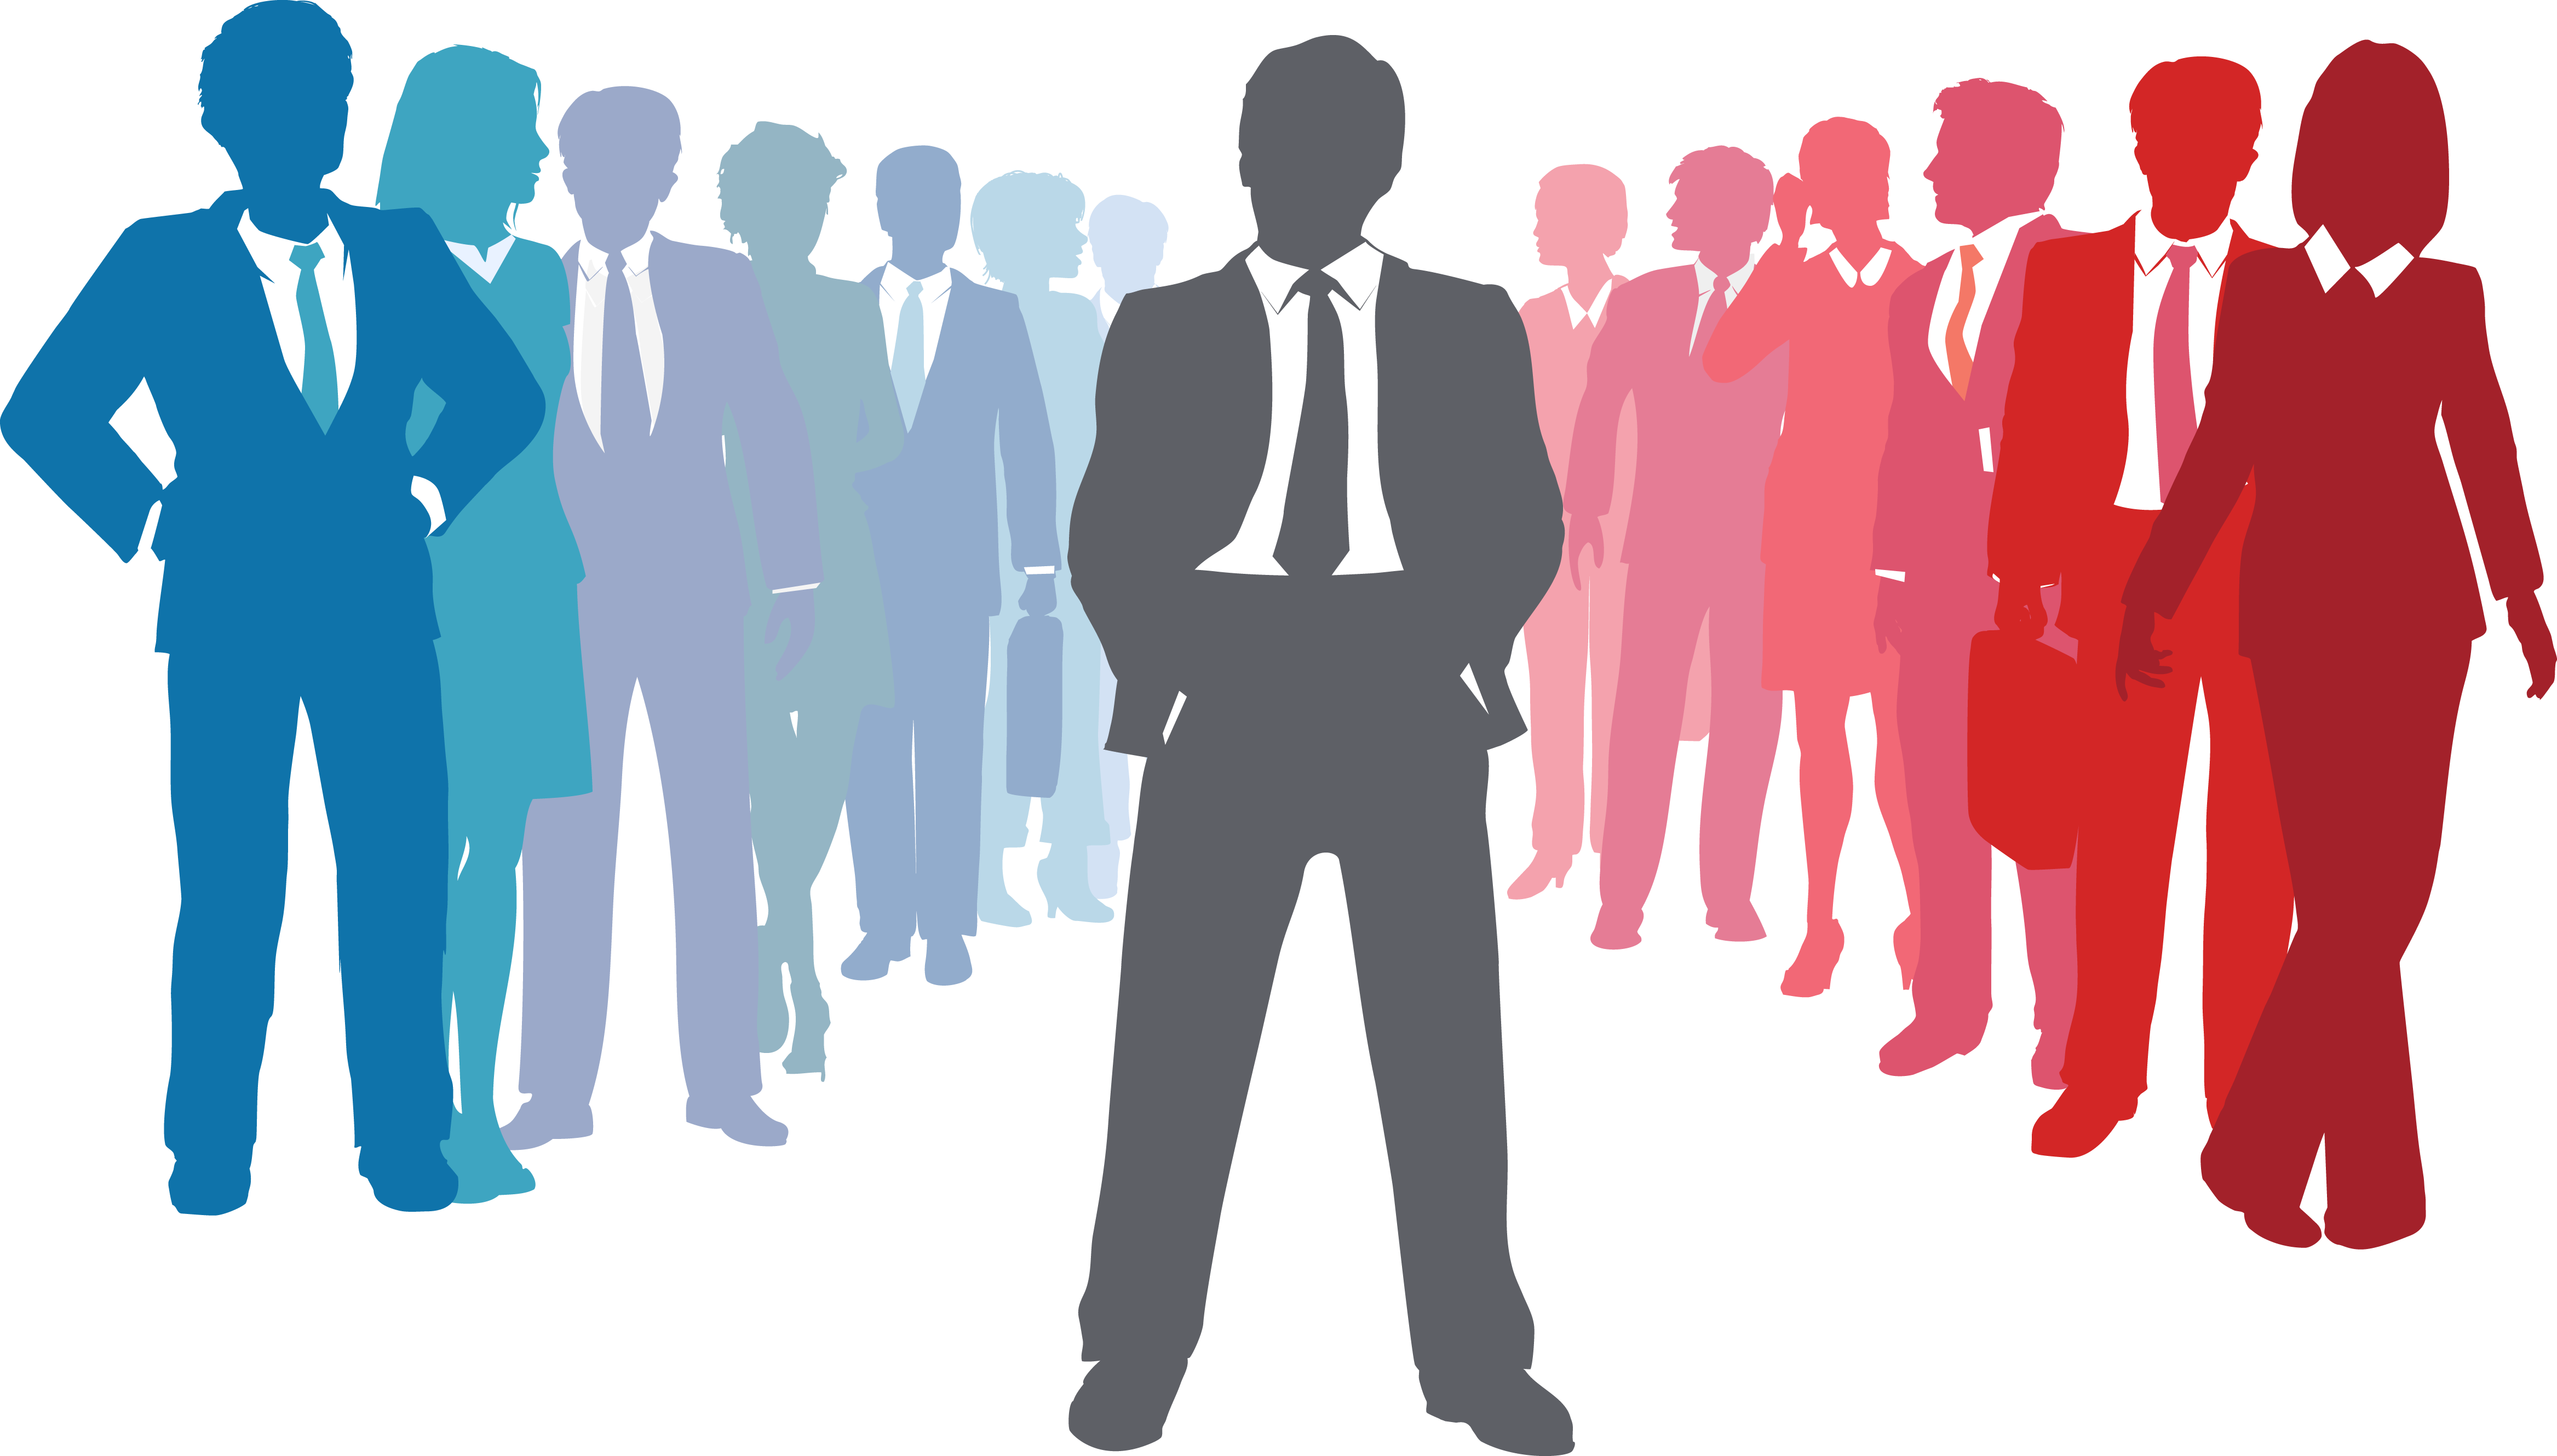 Leading people ecqs the. Teamwork clipart democratic leader